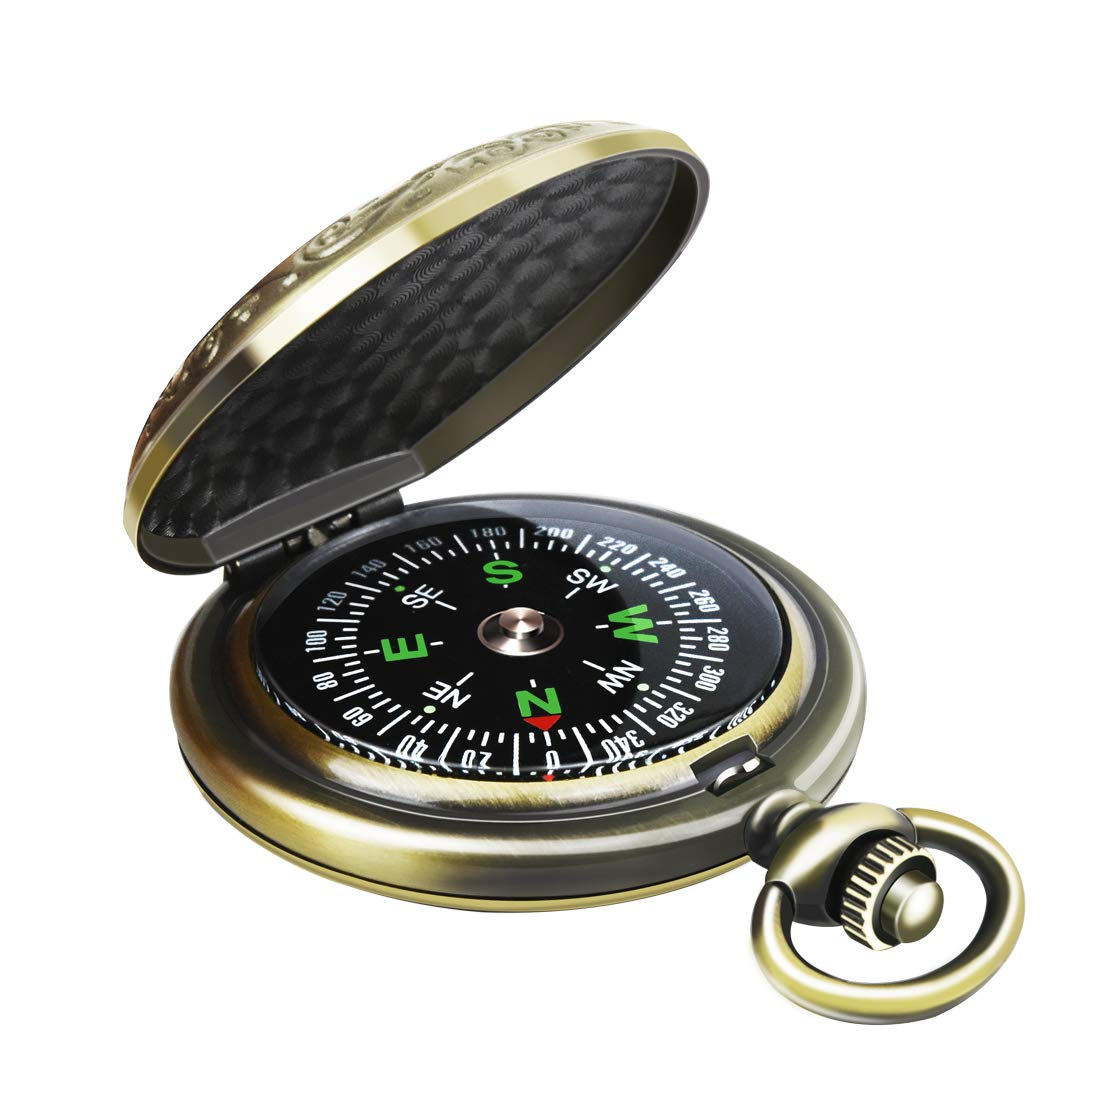 Boating Motoring Backpacking Camping Leabertee Multifunctional Zinc Alloy Classic Compass for Hiking Gift and Collection